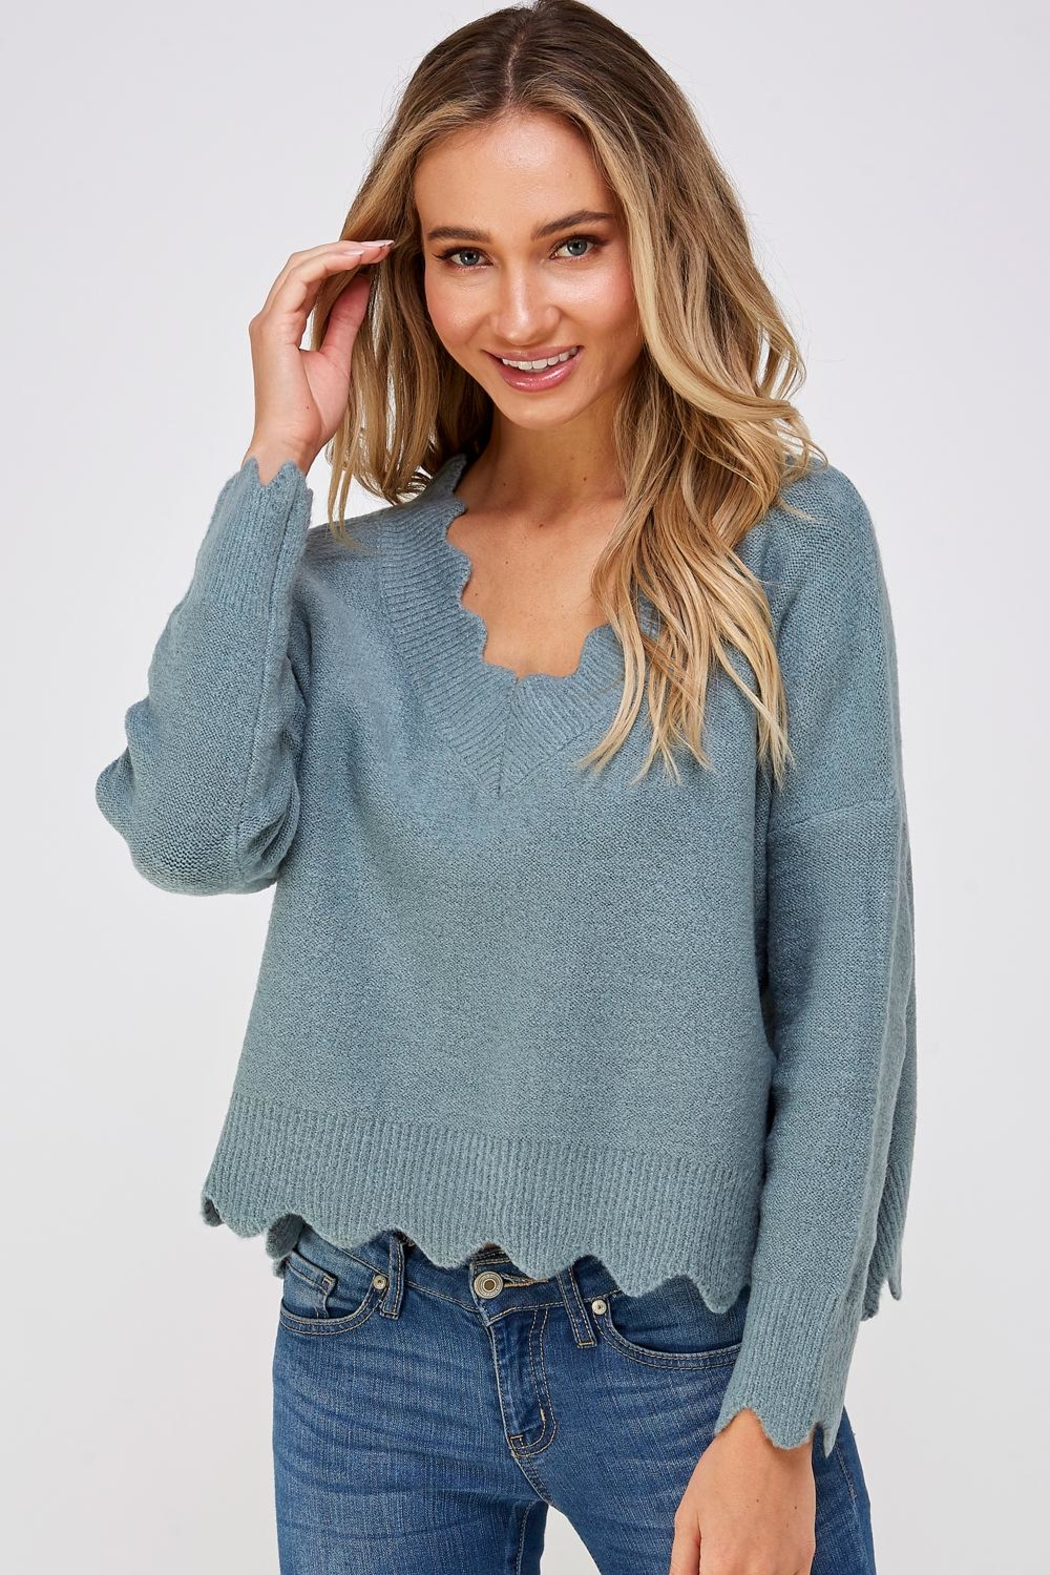 She + Sky Scallop Trim Sweater - Front Full Image